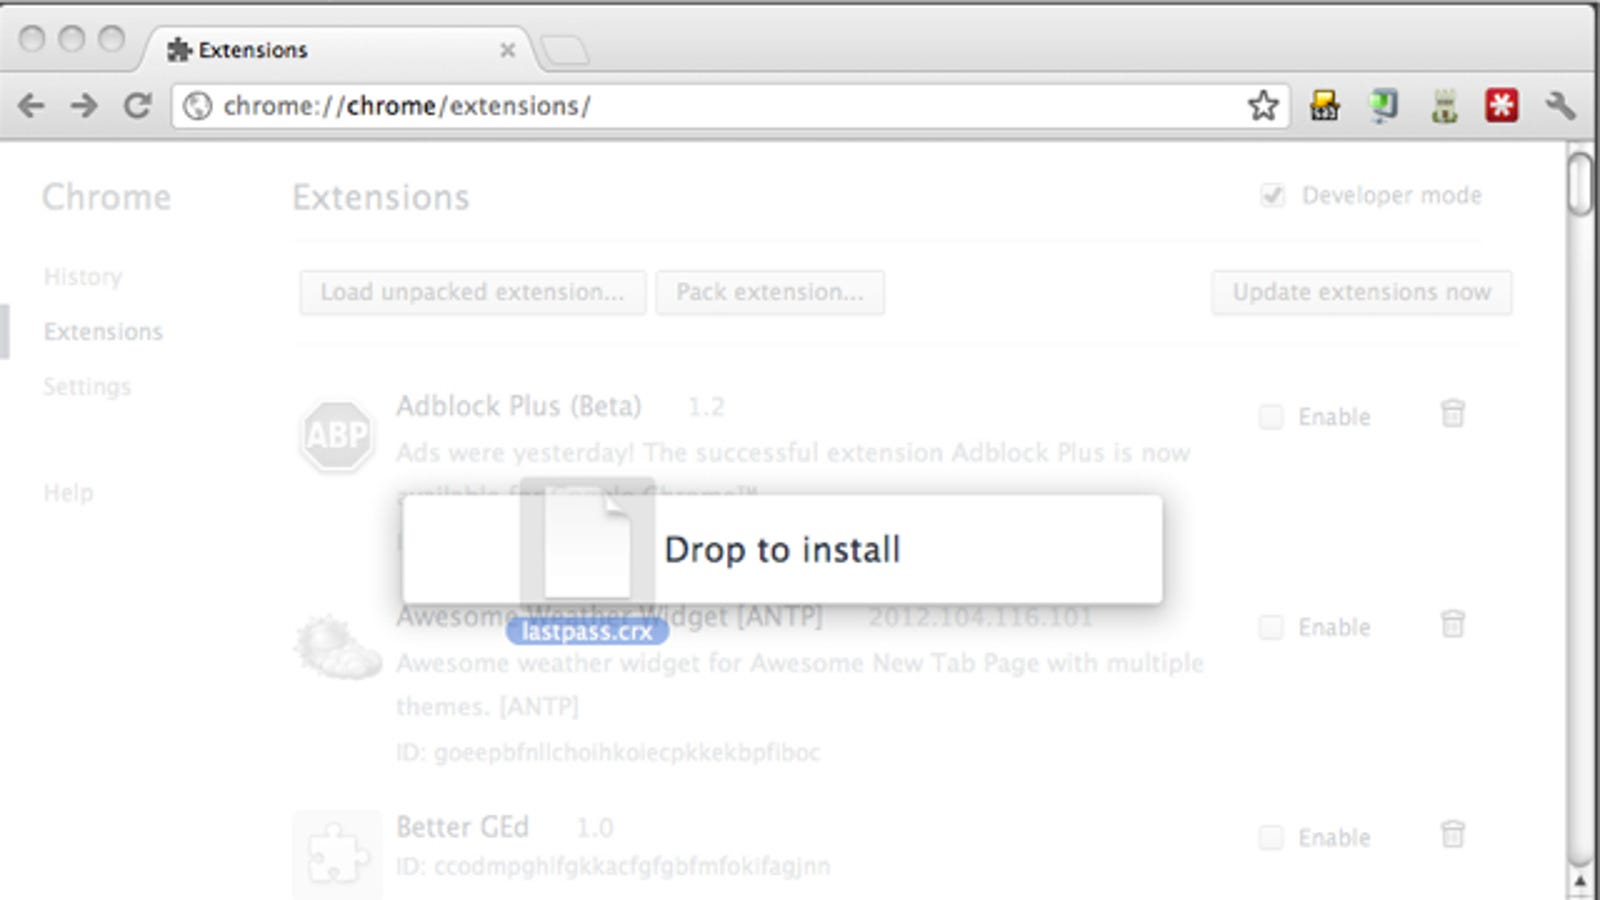 How to Install Extensions that Aren't from the Official Chrome Web Store